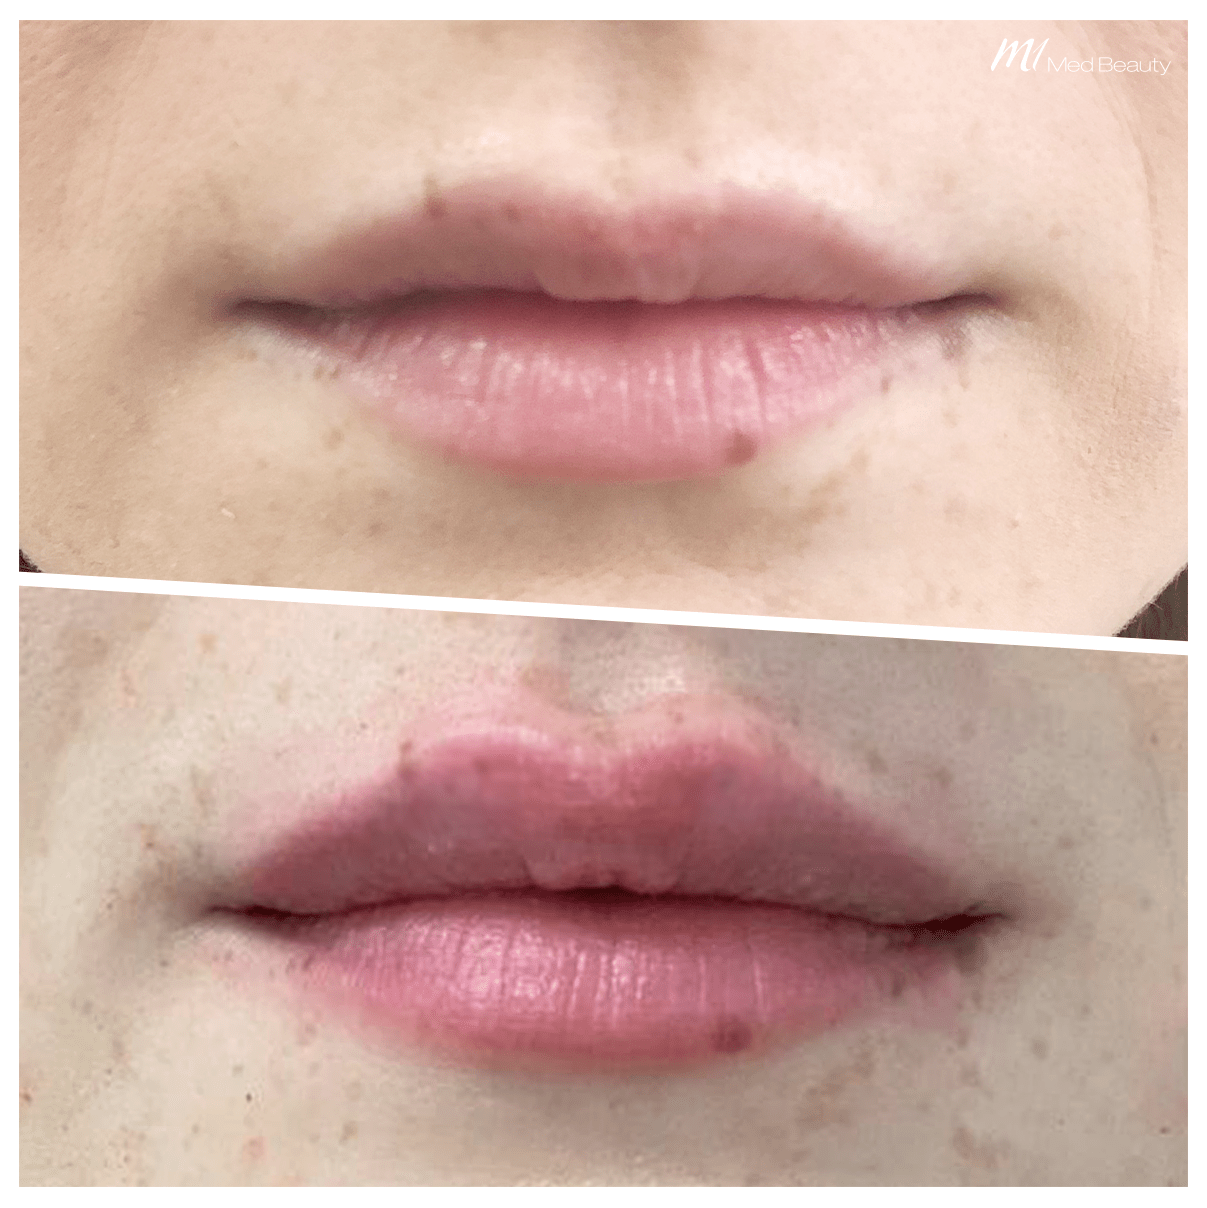 Lip filler treatment at M1 Med Beauty, Lip enhancement with Cosmetic Doctors